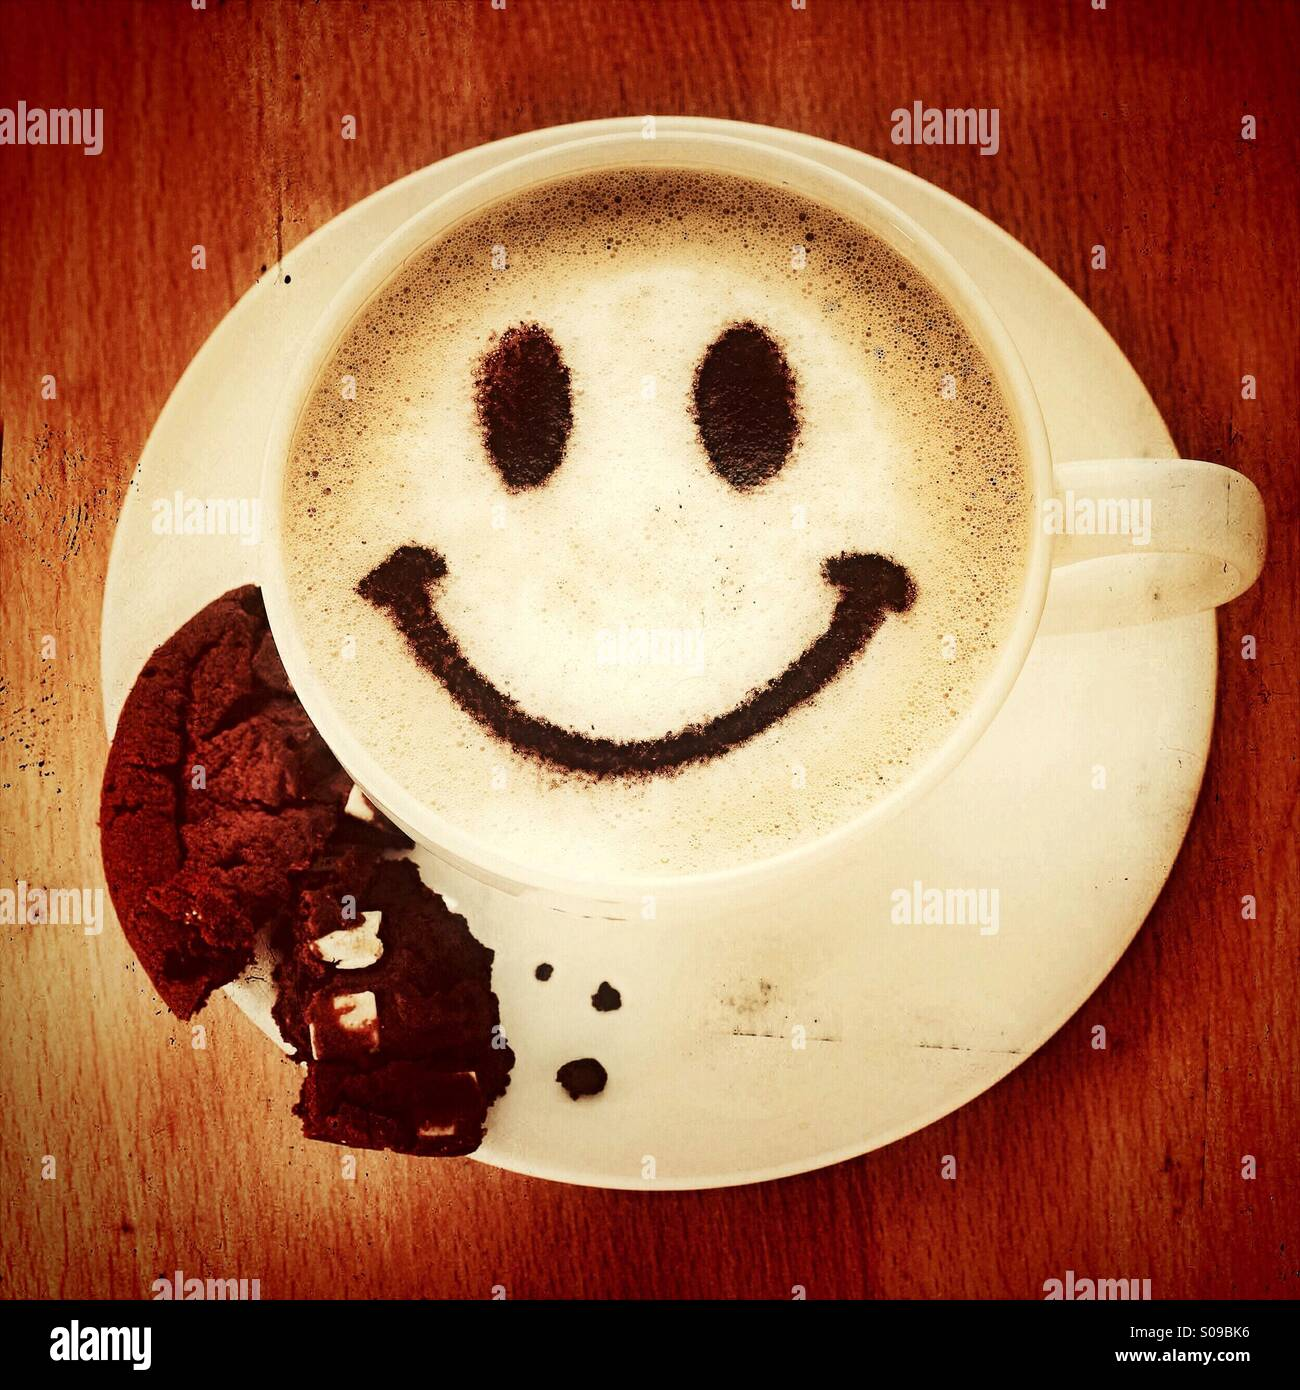 Coffee break - a cappuccino with a smiley face and a cookie biscuit - Stock Image